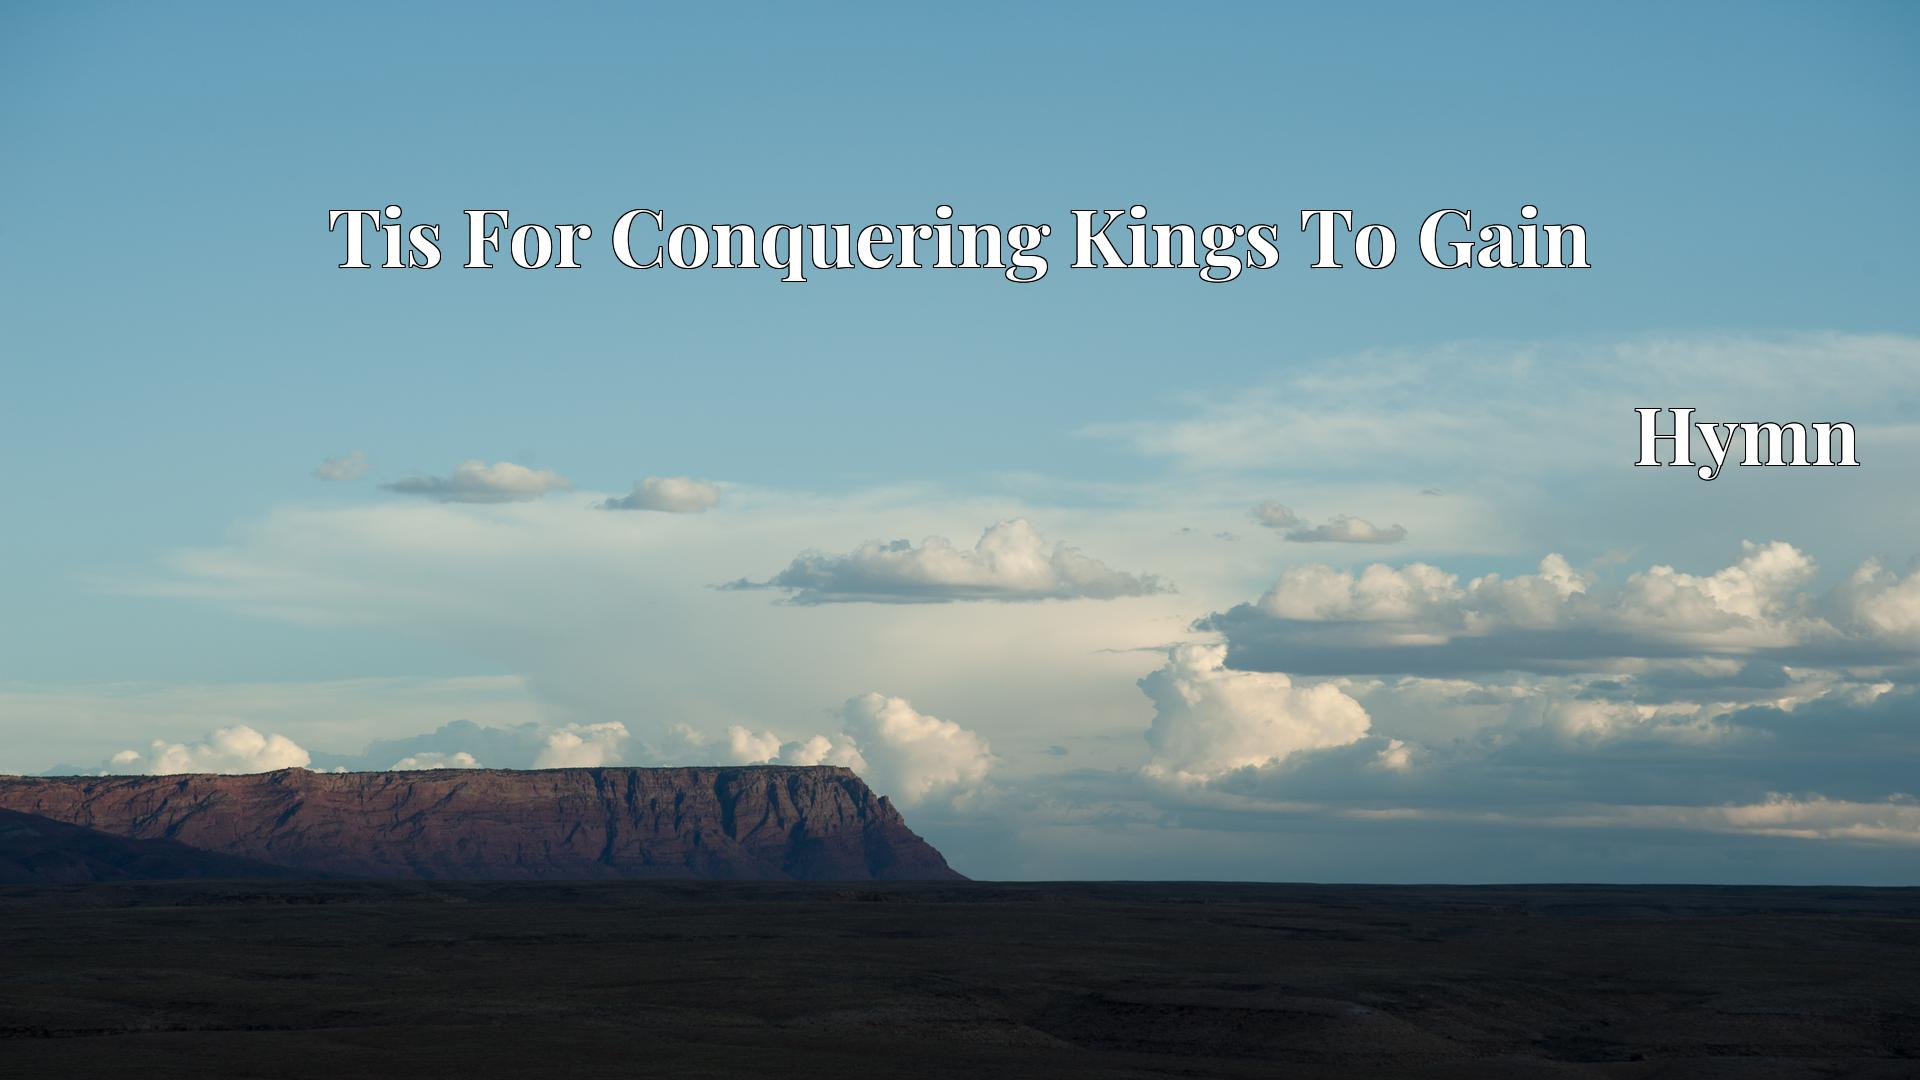 Tis For Conquering Kings To Gain - Hymn